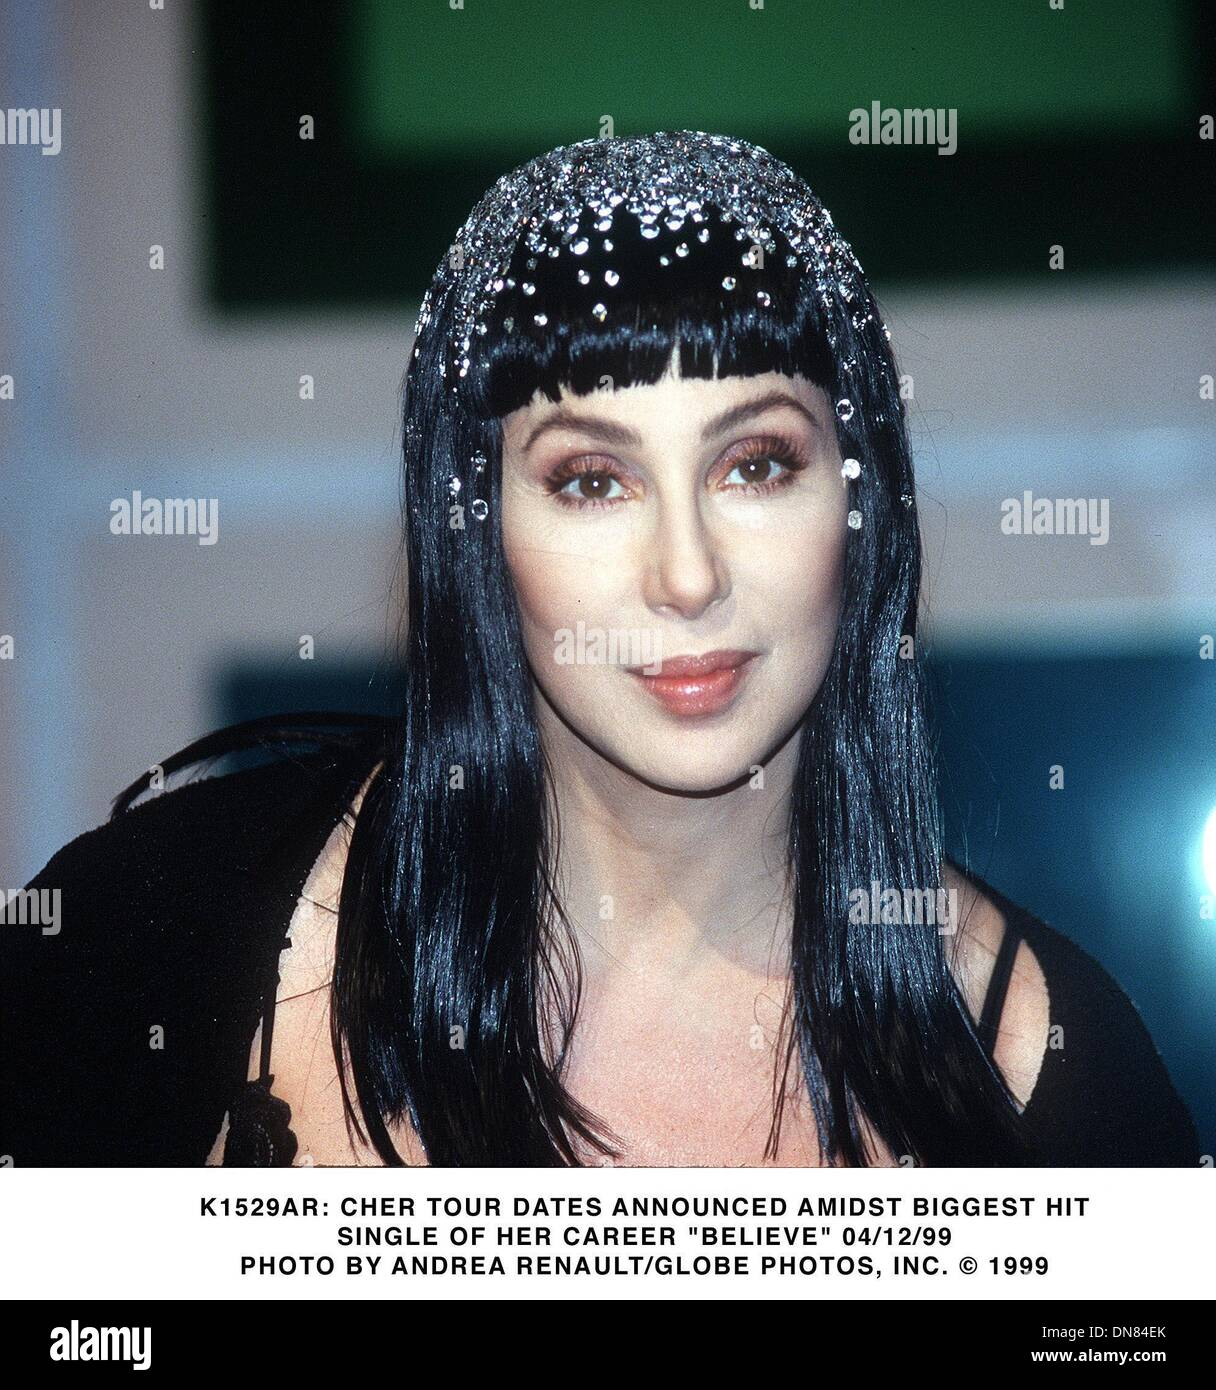 Apr. 12, 1999 - K1529AR     04/12/99.CHER TOUR DATES ANNOUNCED AMIDST BIGGEST HIT.SINGLE OF HER CAREER ''BELIEVE''. Stock Photo